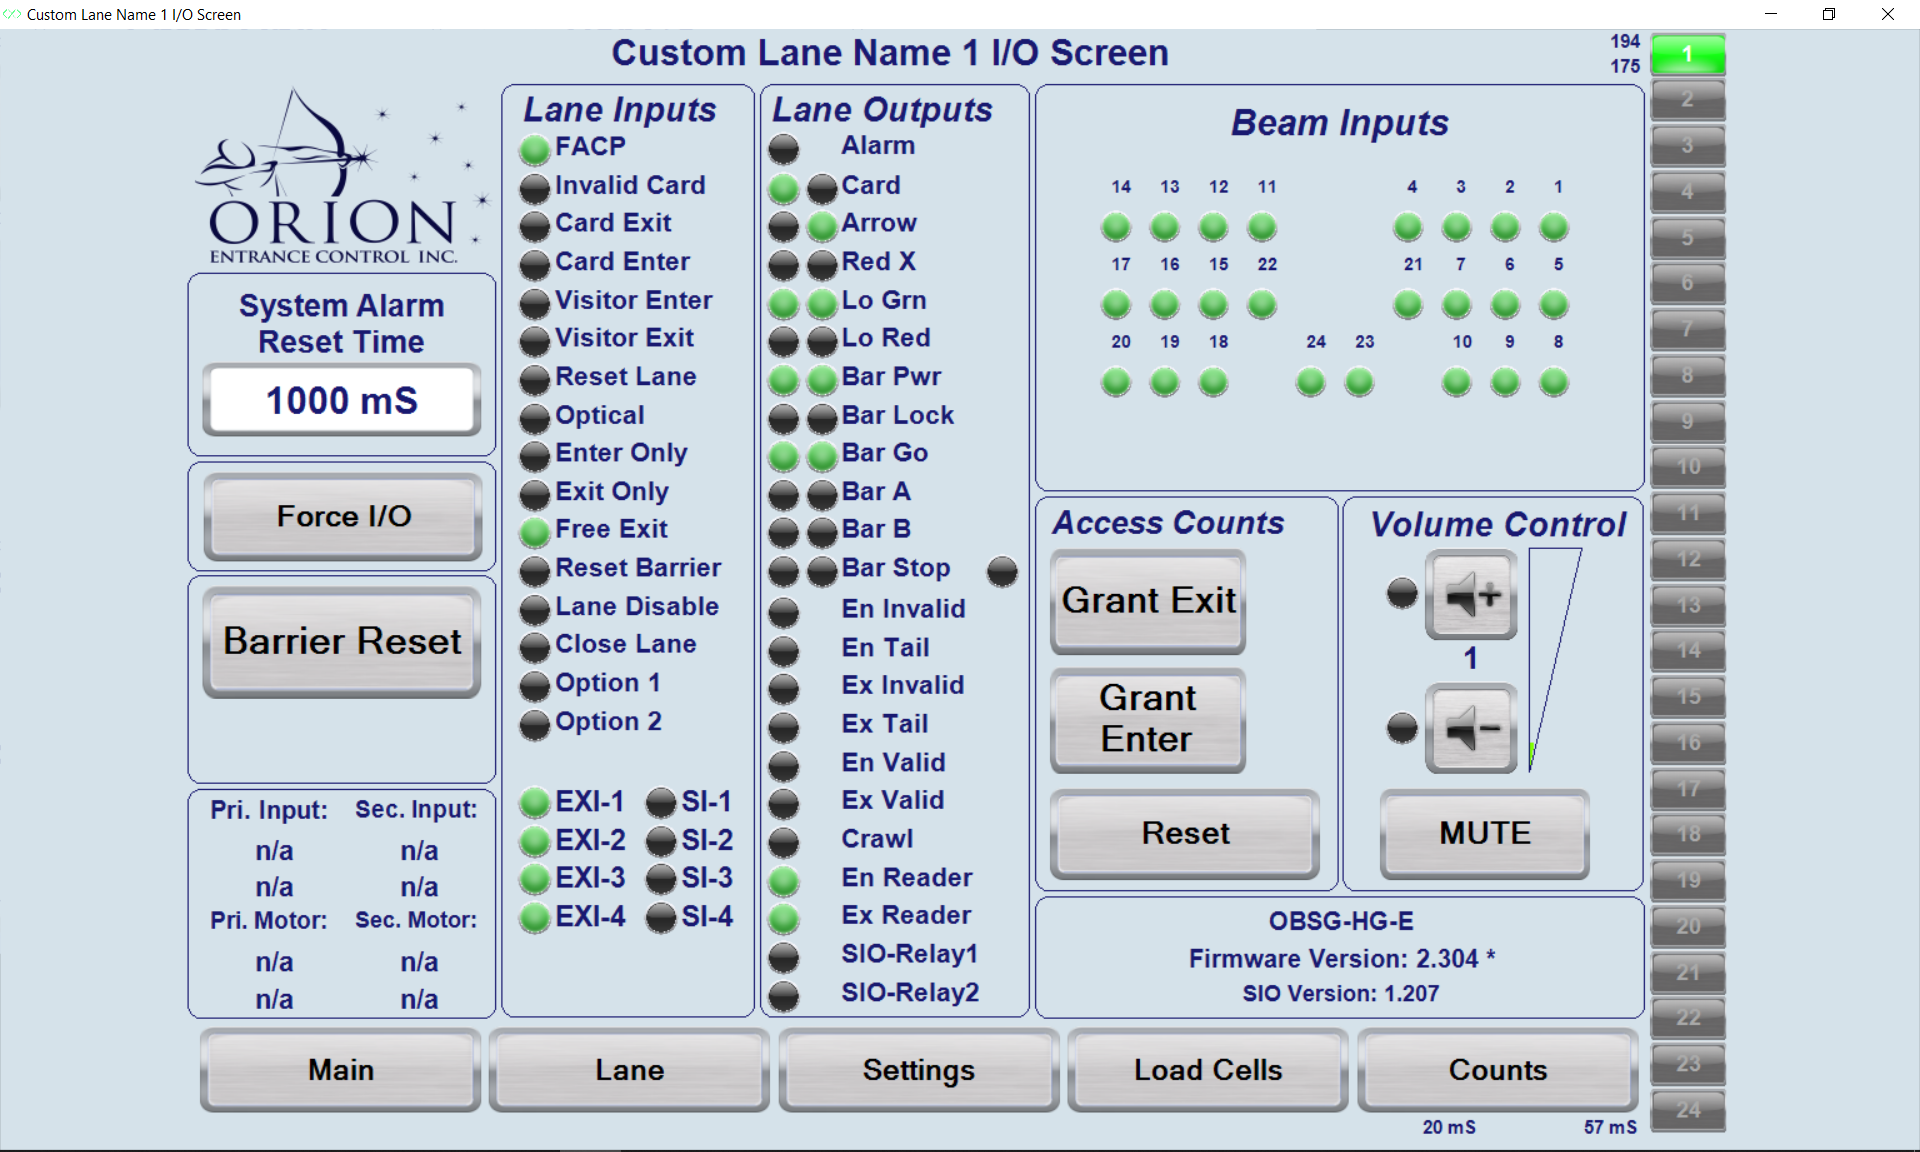 Lane Inputs-Outputs Screen and Volume Control